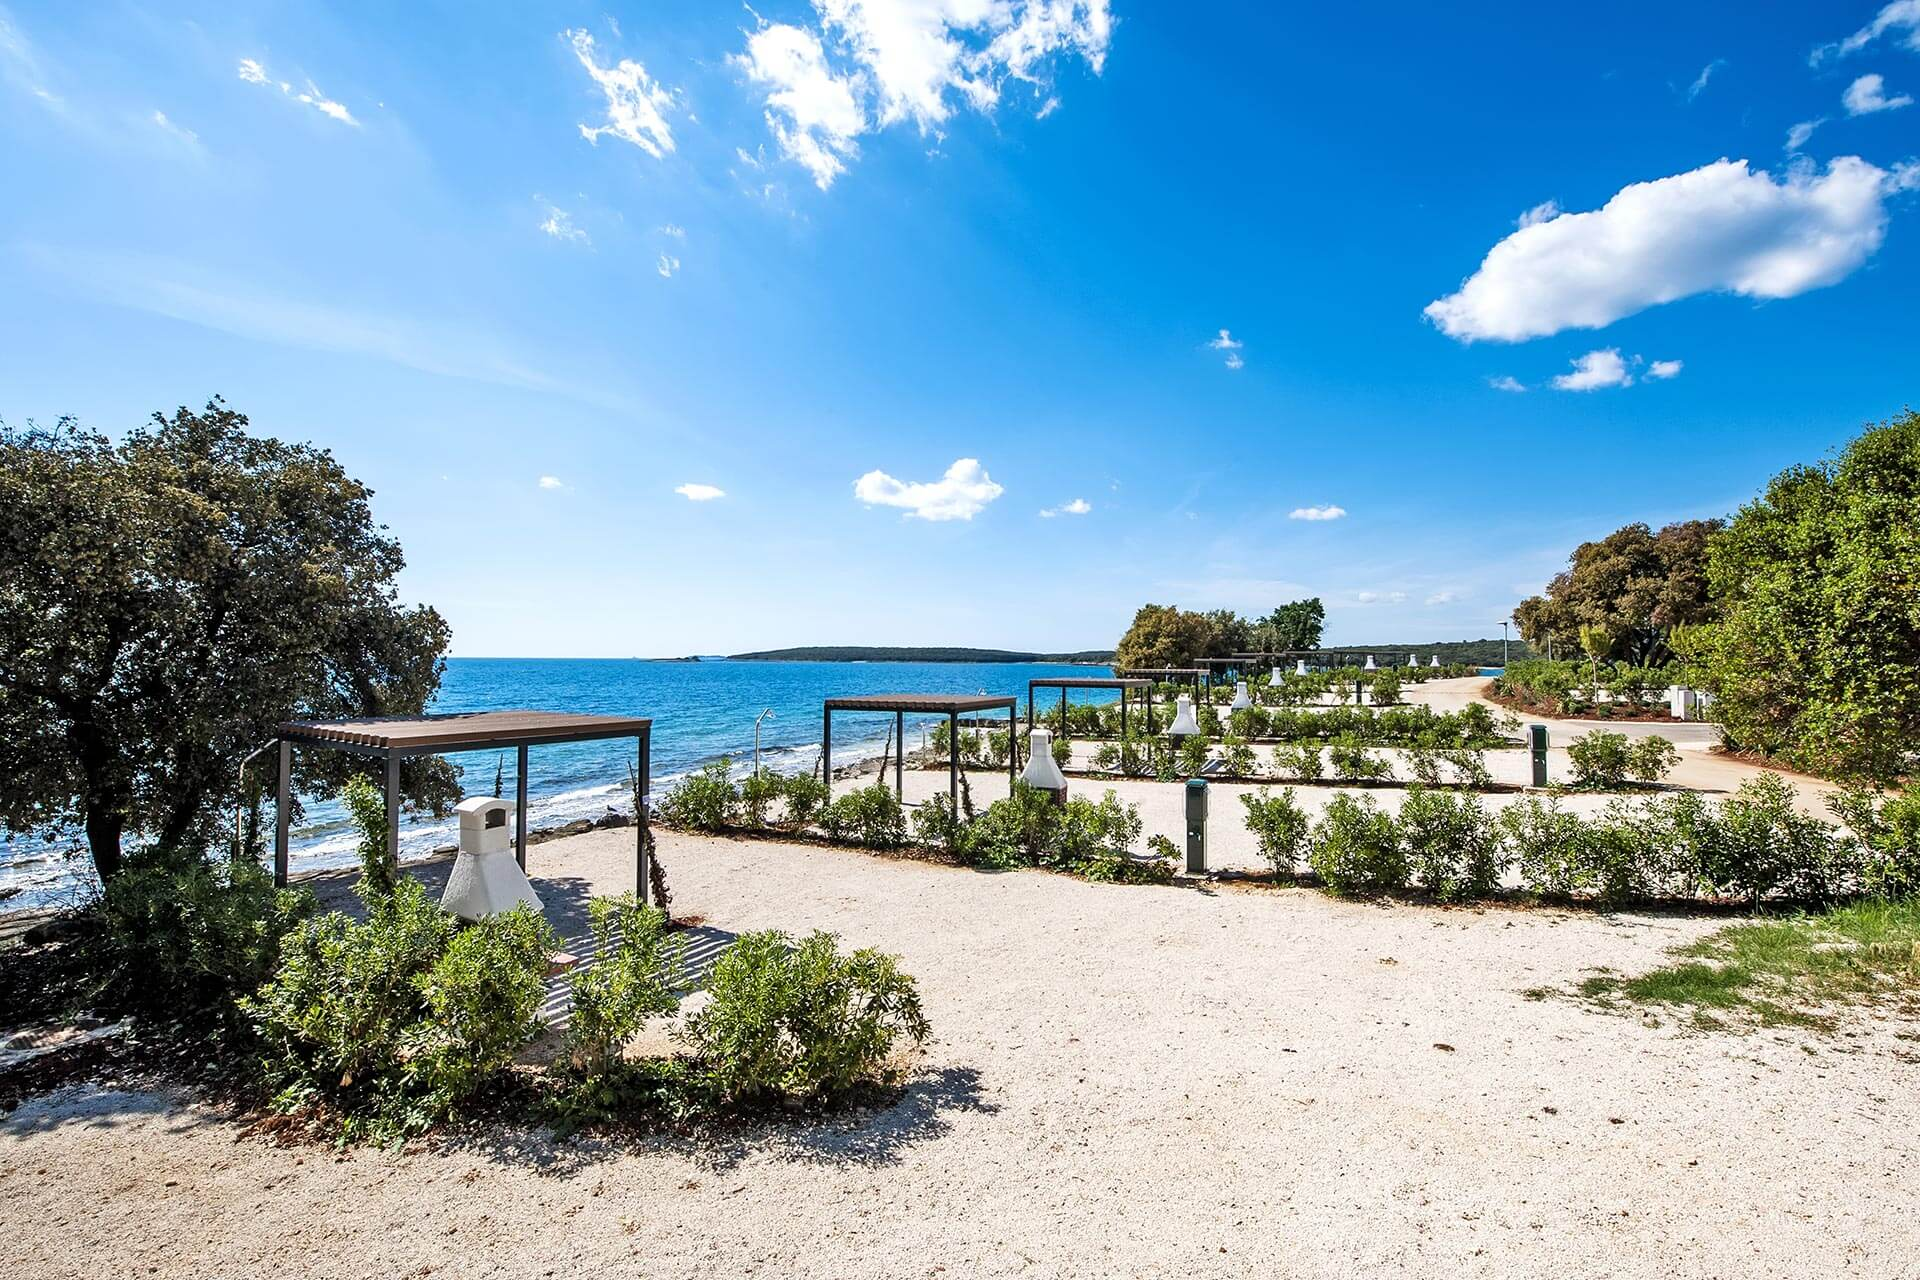 Emplacement - Emplacement Luxury Mare - Camping Mon Perin